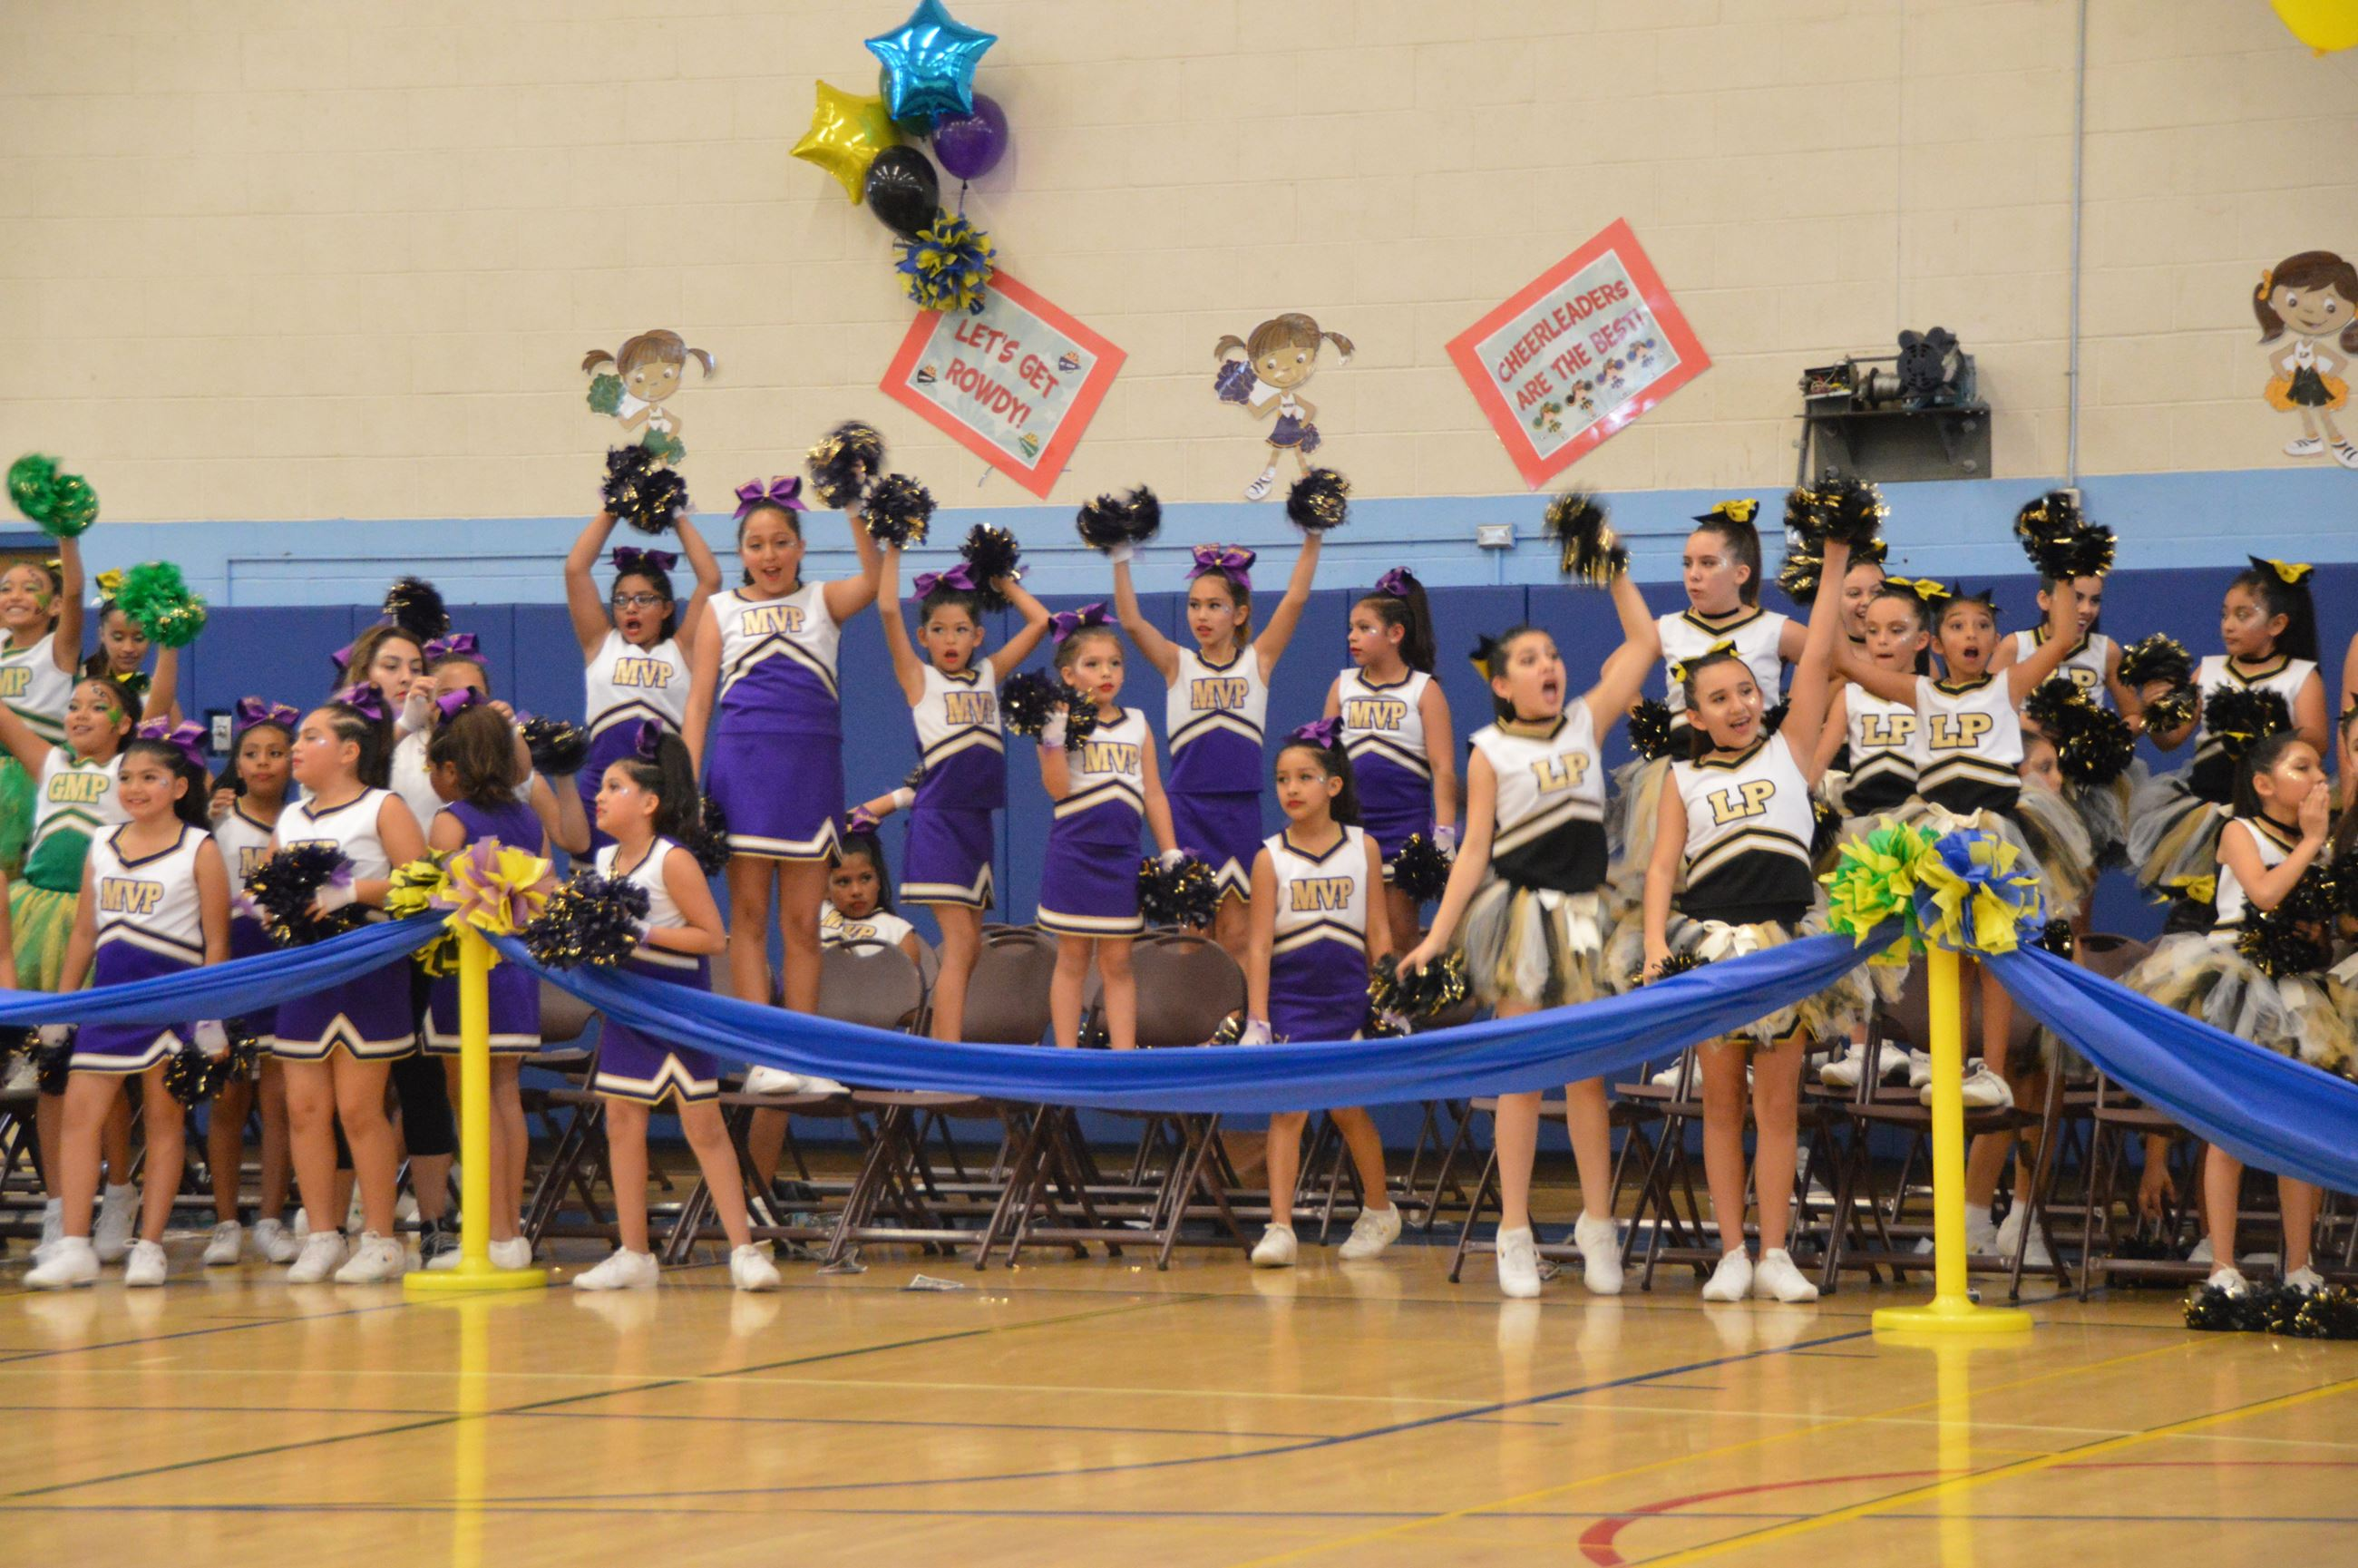 Group of Pee Wee Cheerleaders cheering at the annual Jamboree event